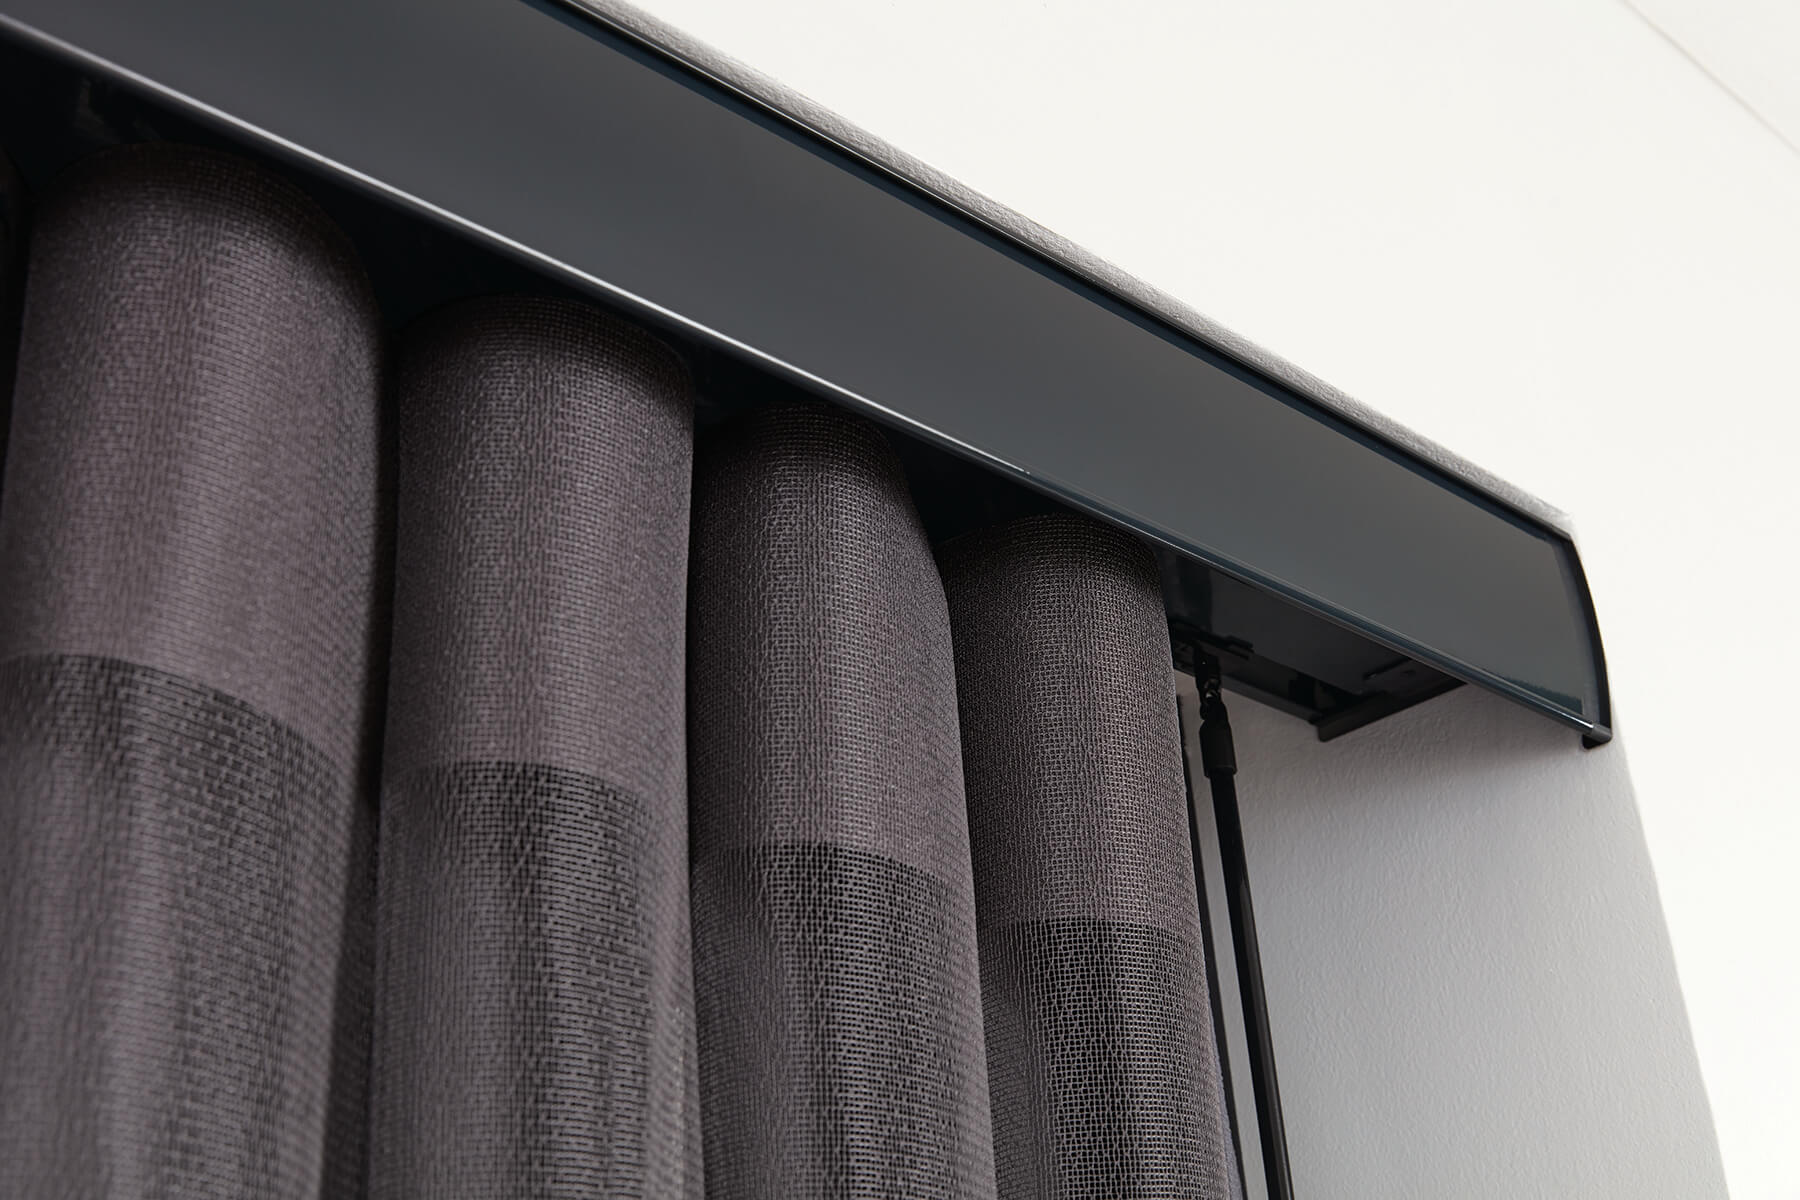 produkt solutions printacoustic looking ation horizon cr bild for product en technical blinds baumann